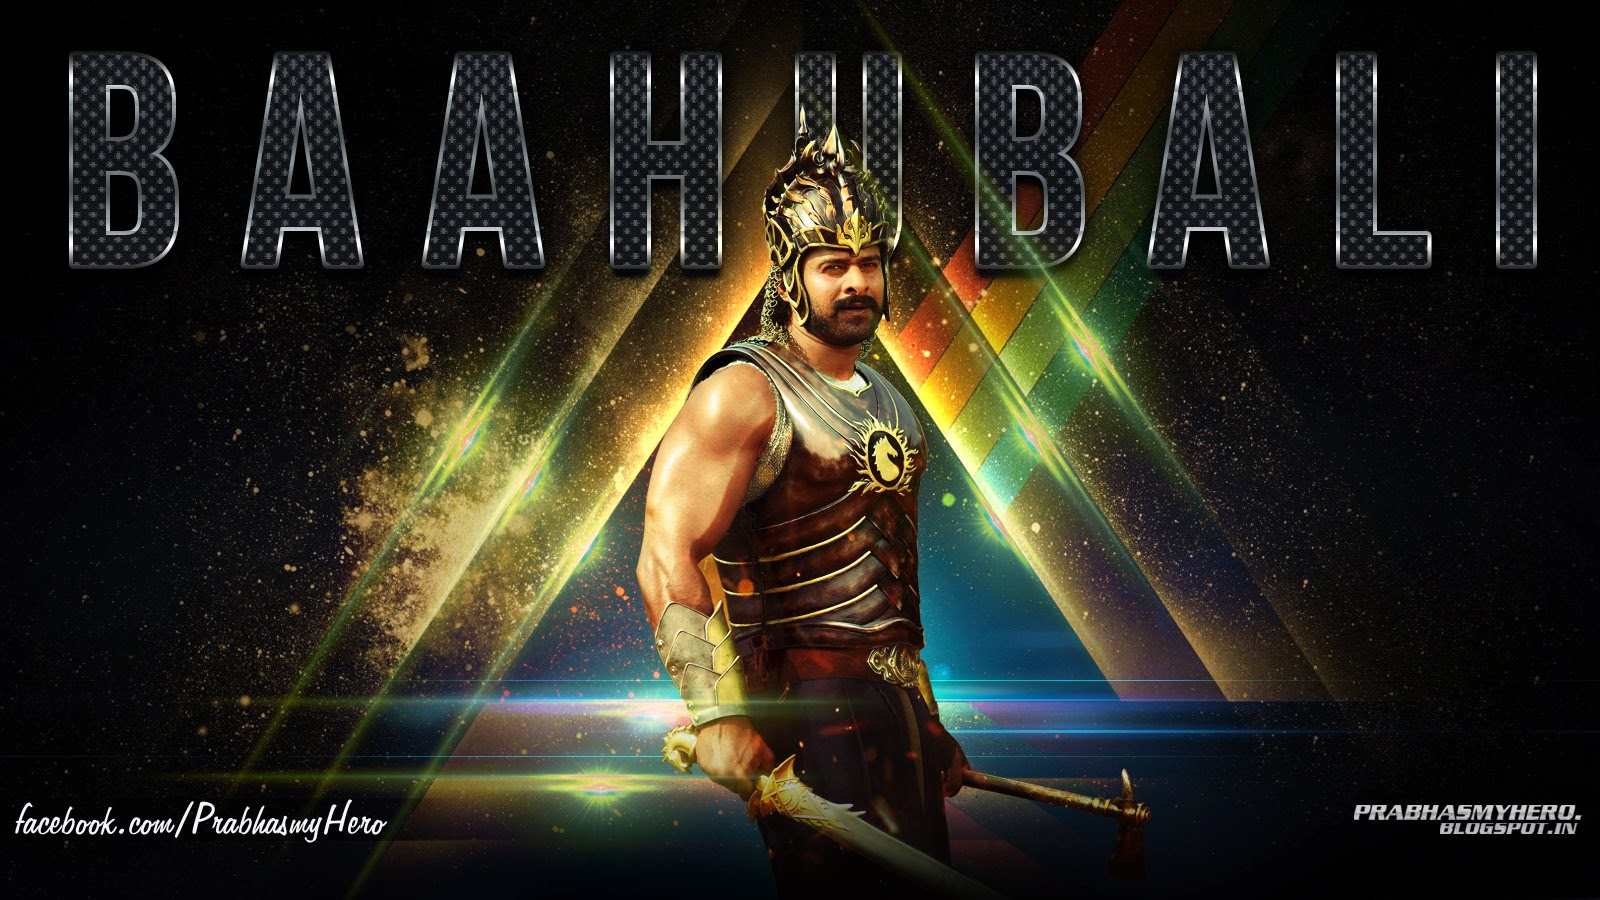 Prabhasmyhero Blog Exclusive Baahubali Wallpapers